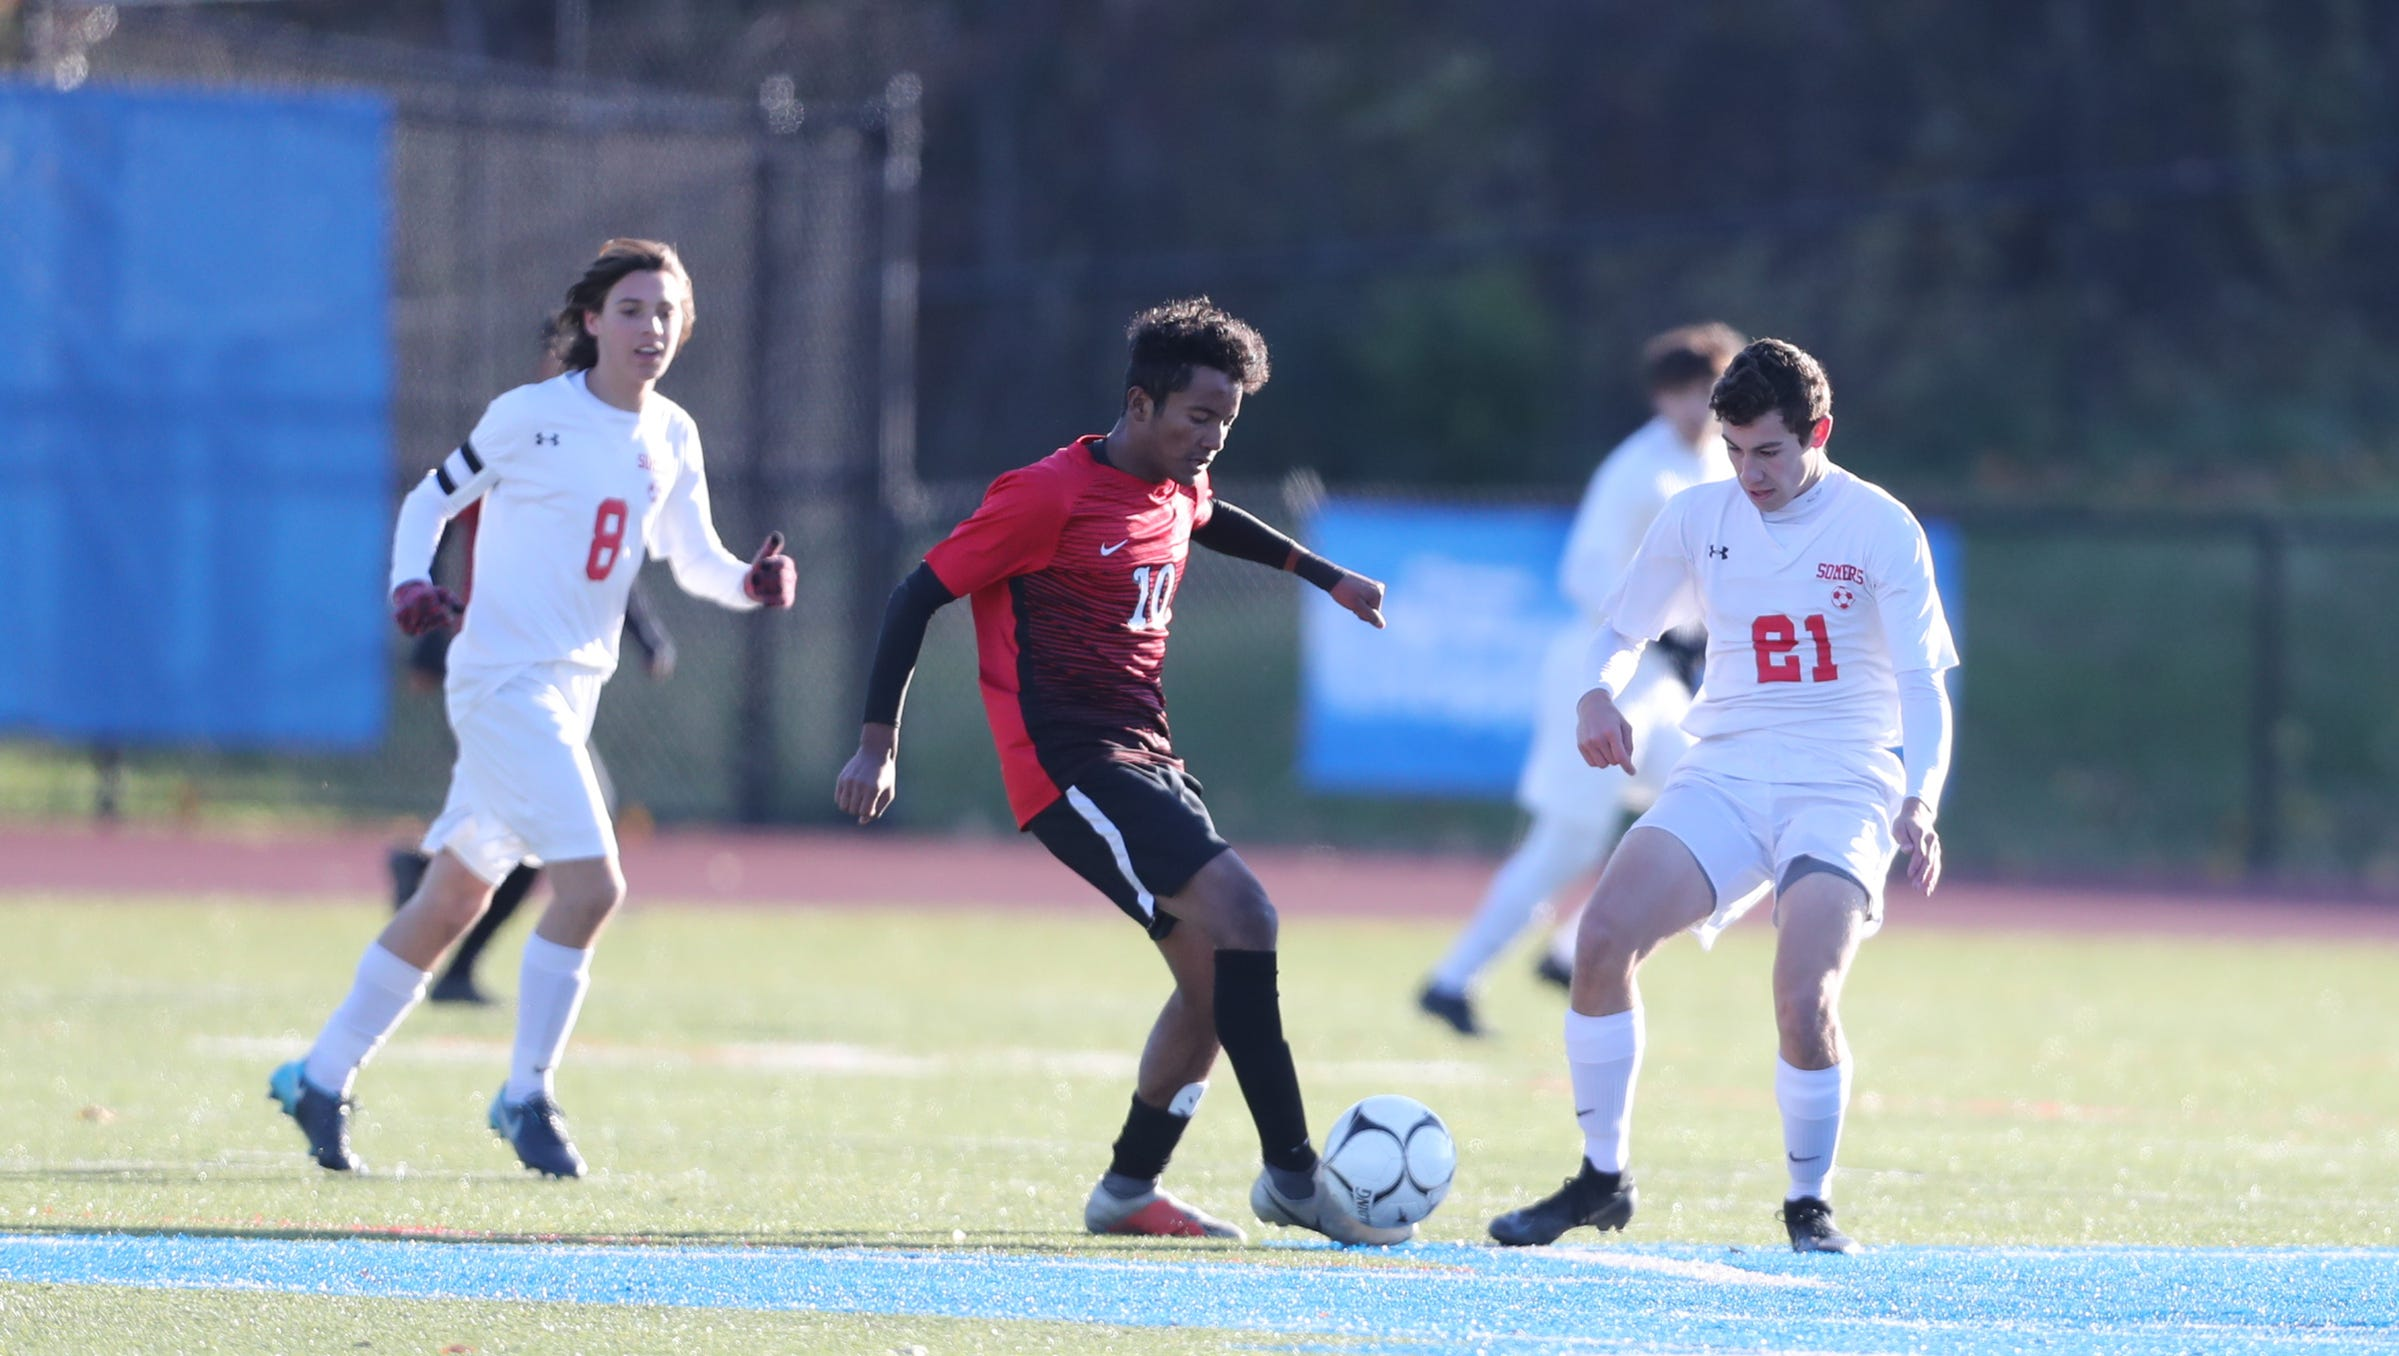 Somers falls 2-1 to Amityville in the Class A boys state soccer final at Middletown High School in Middletown on Sunday, November 11, 2018.